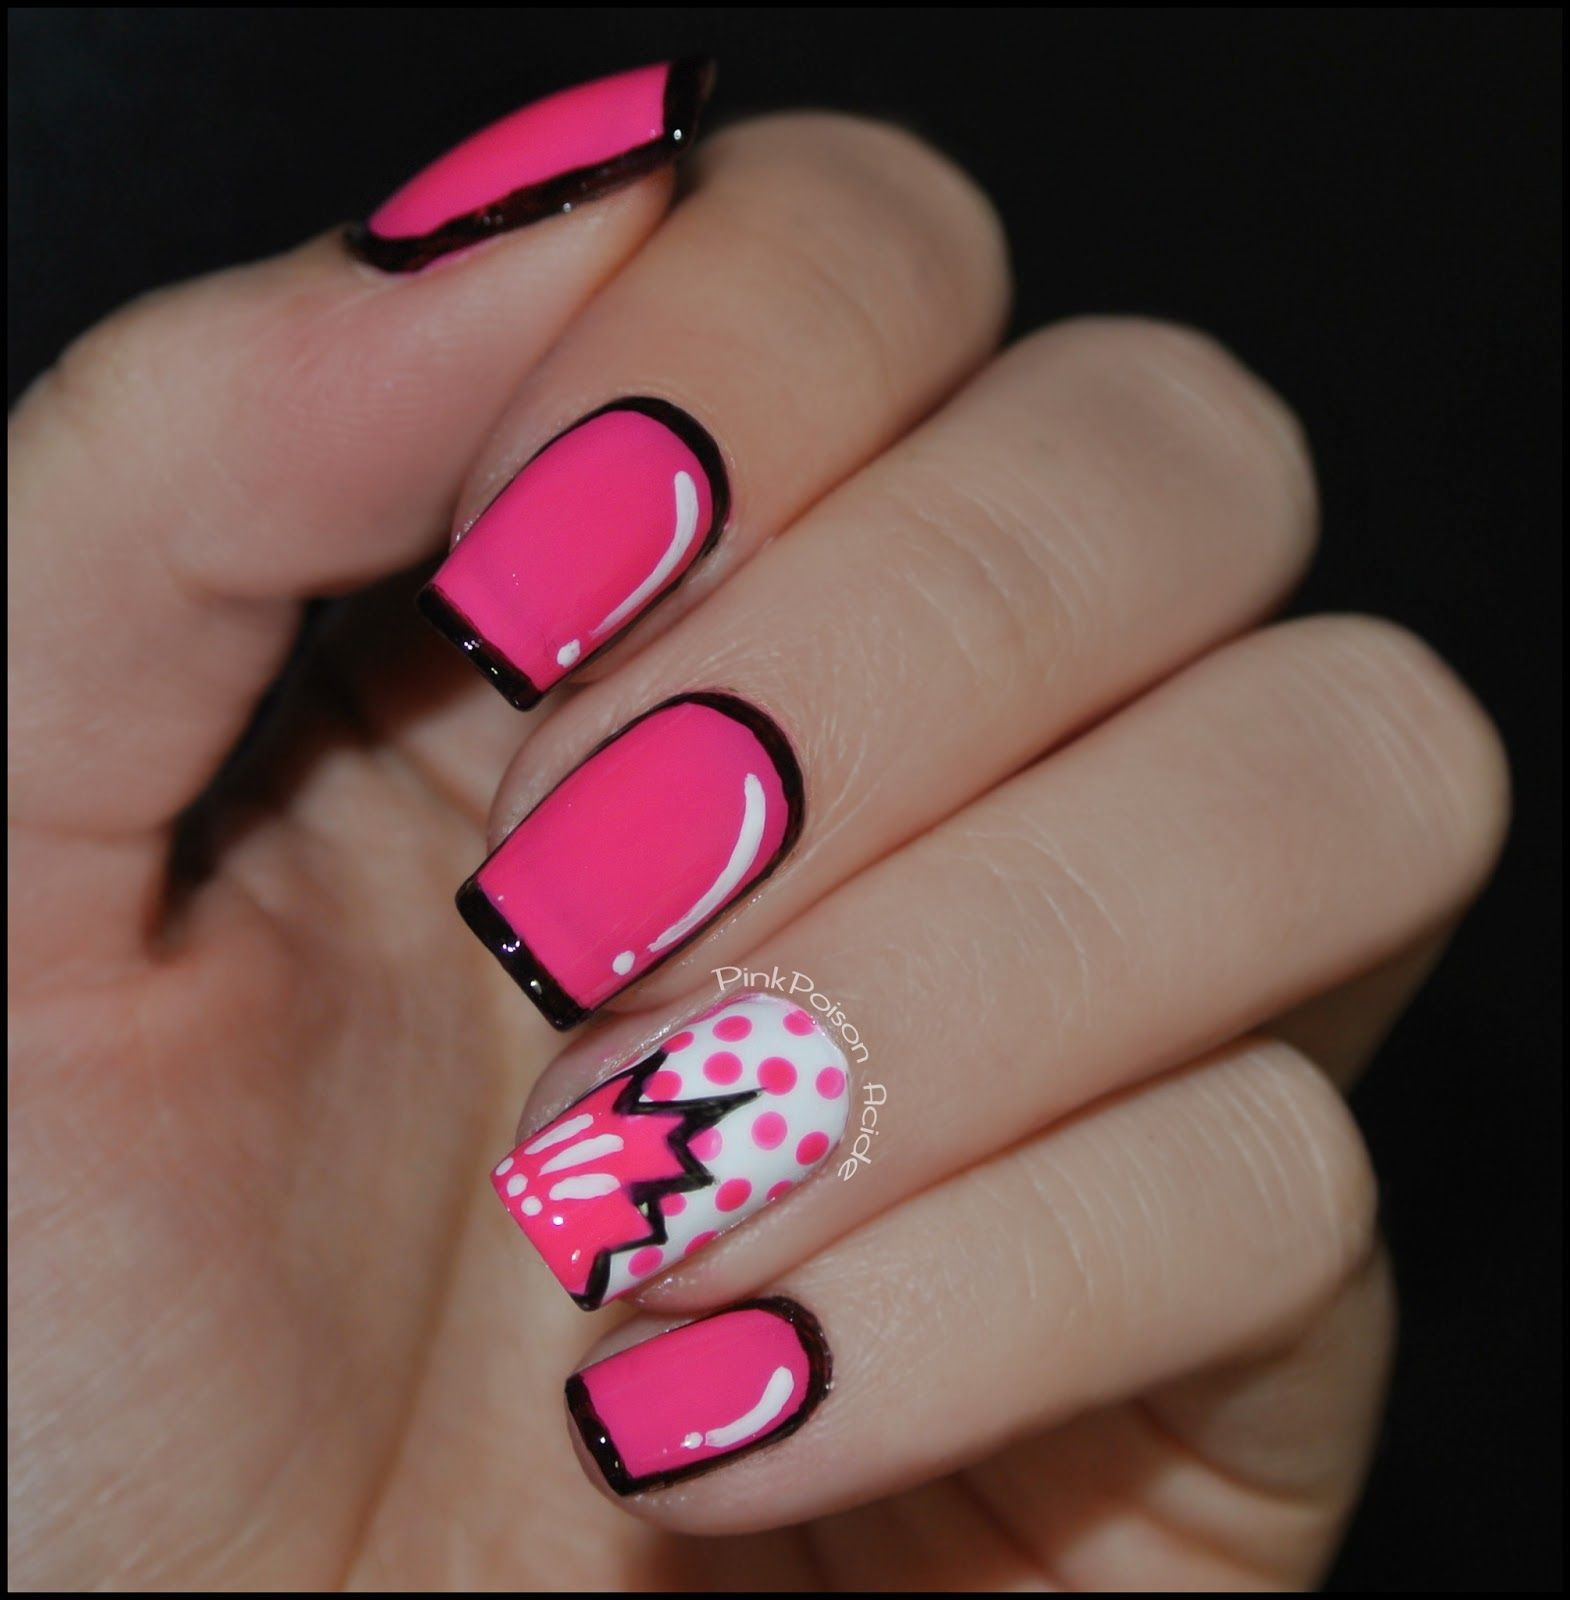 I M Not Really Into Manicures But These Comic Nails Are Super Cute